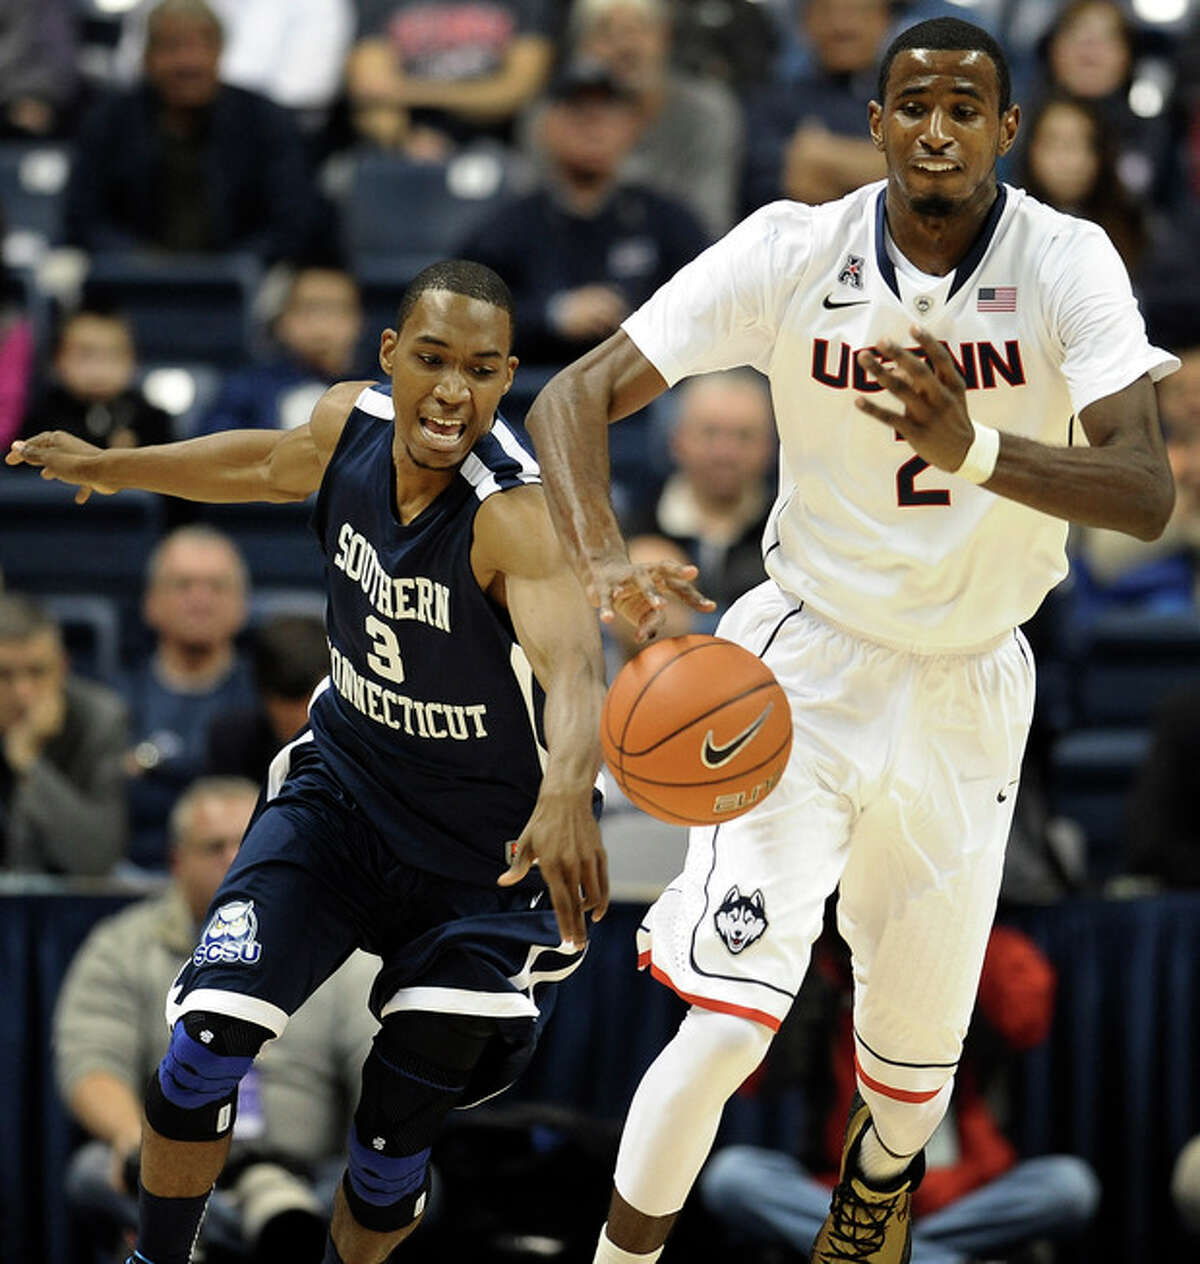 Connecticut's DeAndre Daniels, right, pushes ahead of Southern Connecticut's Michael Mallory, left, during the first half of an NCAA college basketball game, Wednesday, Oct. 30, 2013, in Storrs, Conn. (AP Photo/Jessica Hill)